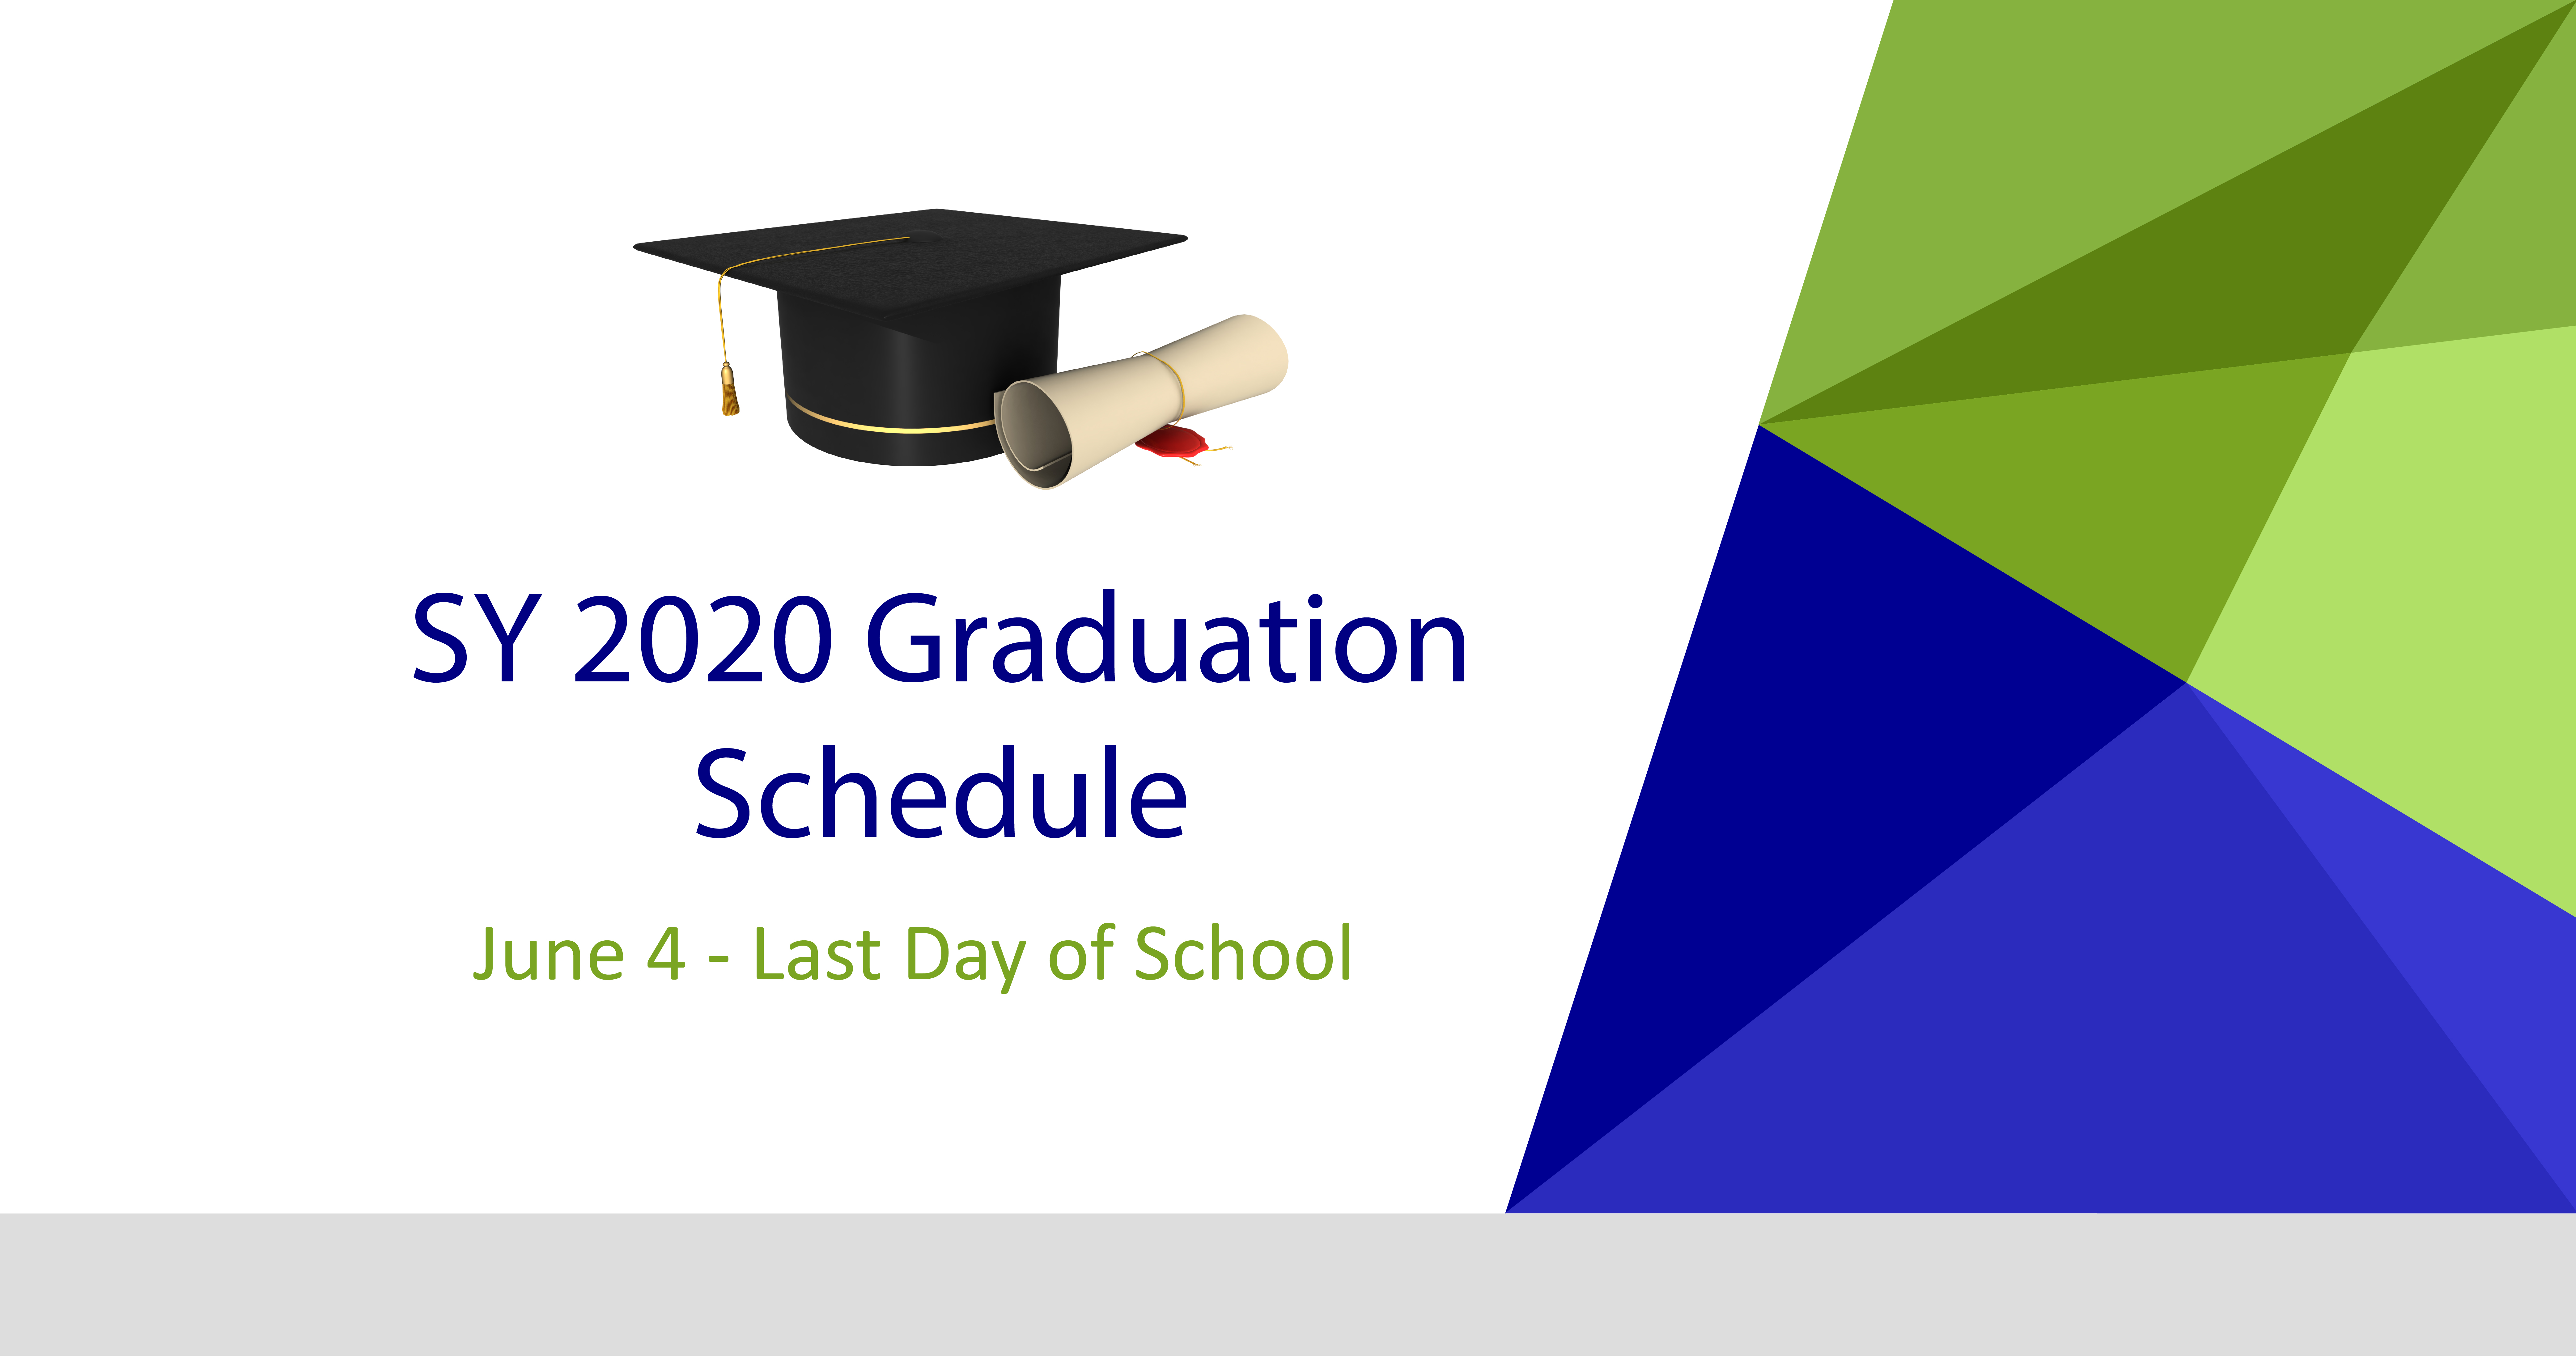 2020 graduation dates announced, June 4 is last day of school